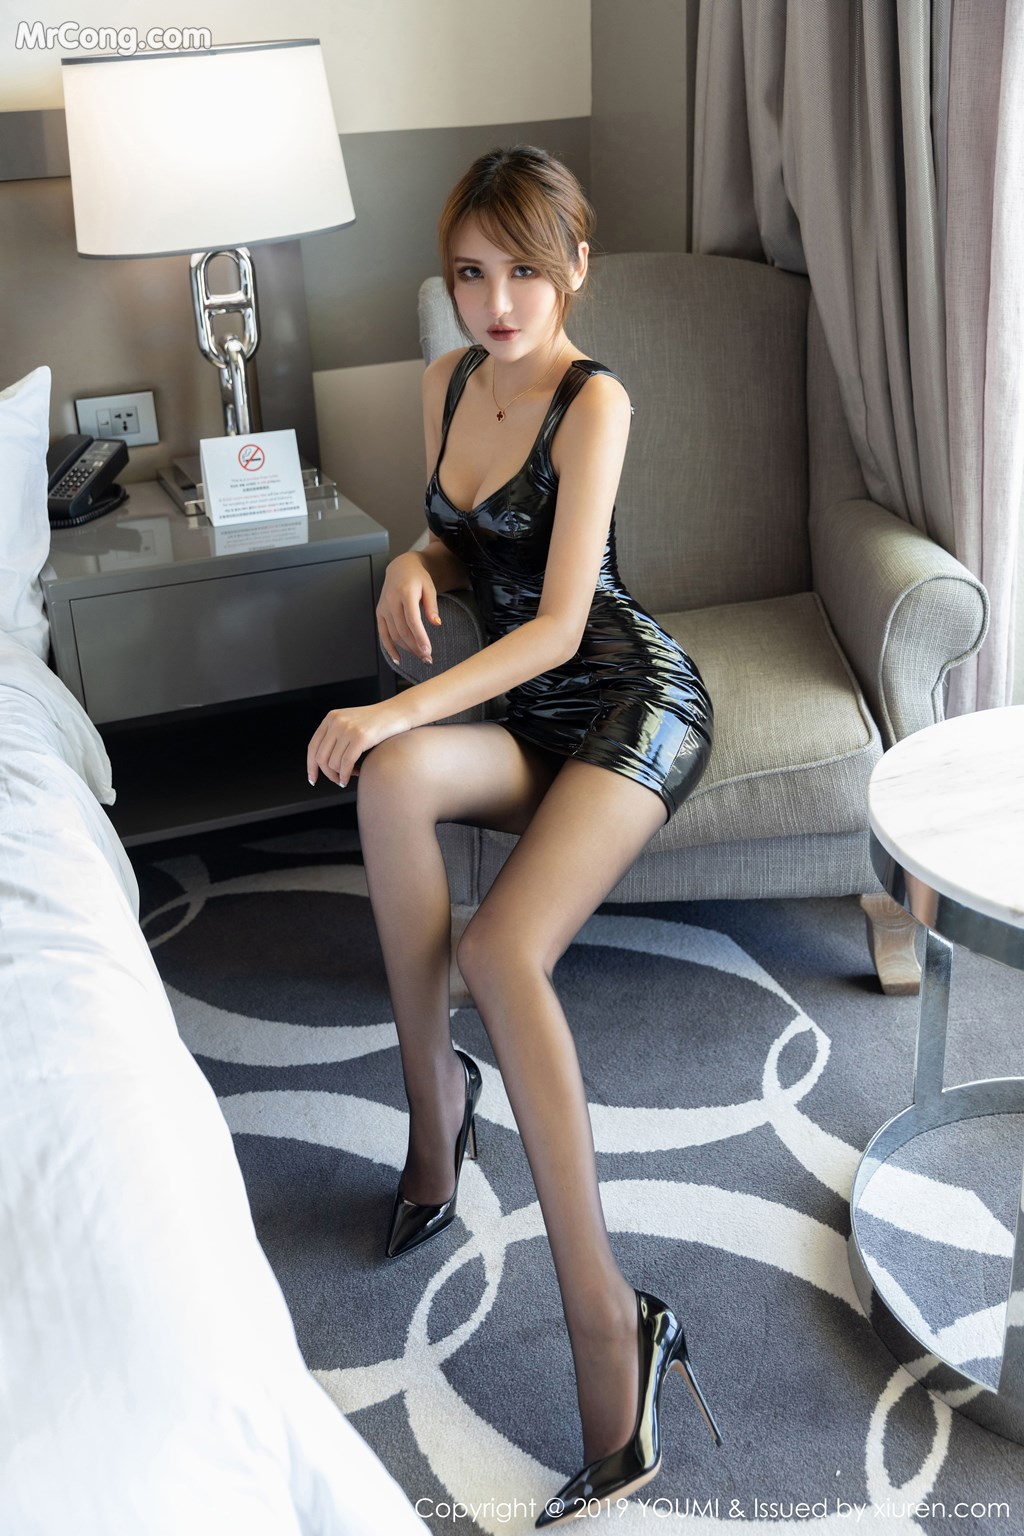 Image YouMi-Vol.338-Emily-MrCong.com-003 in post YouMi Vol.338: Emily顾奈奈 (41 ảnh)